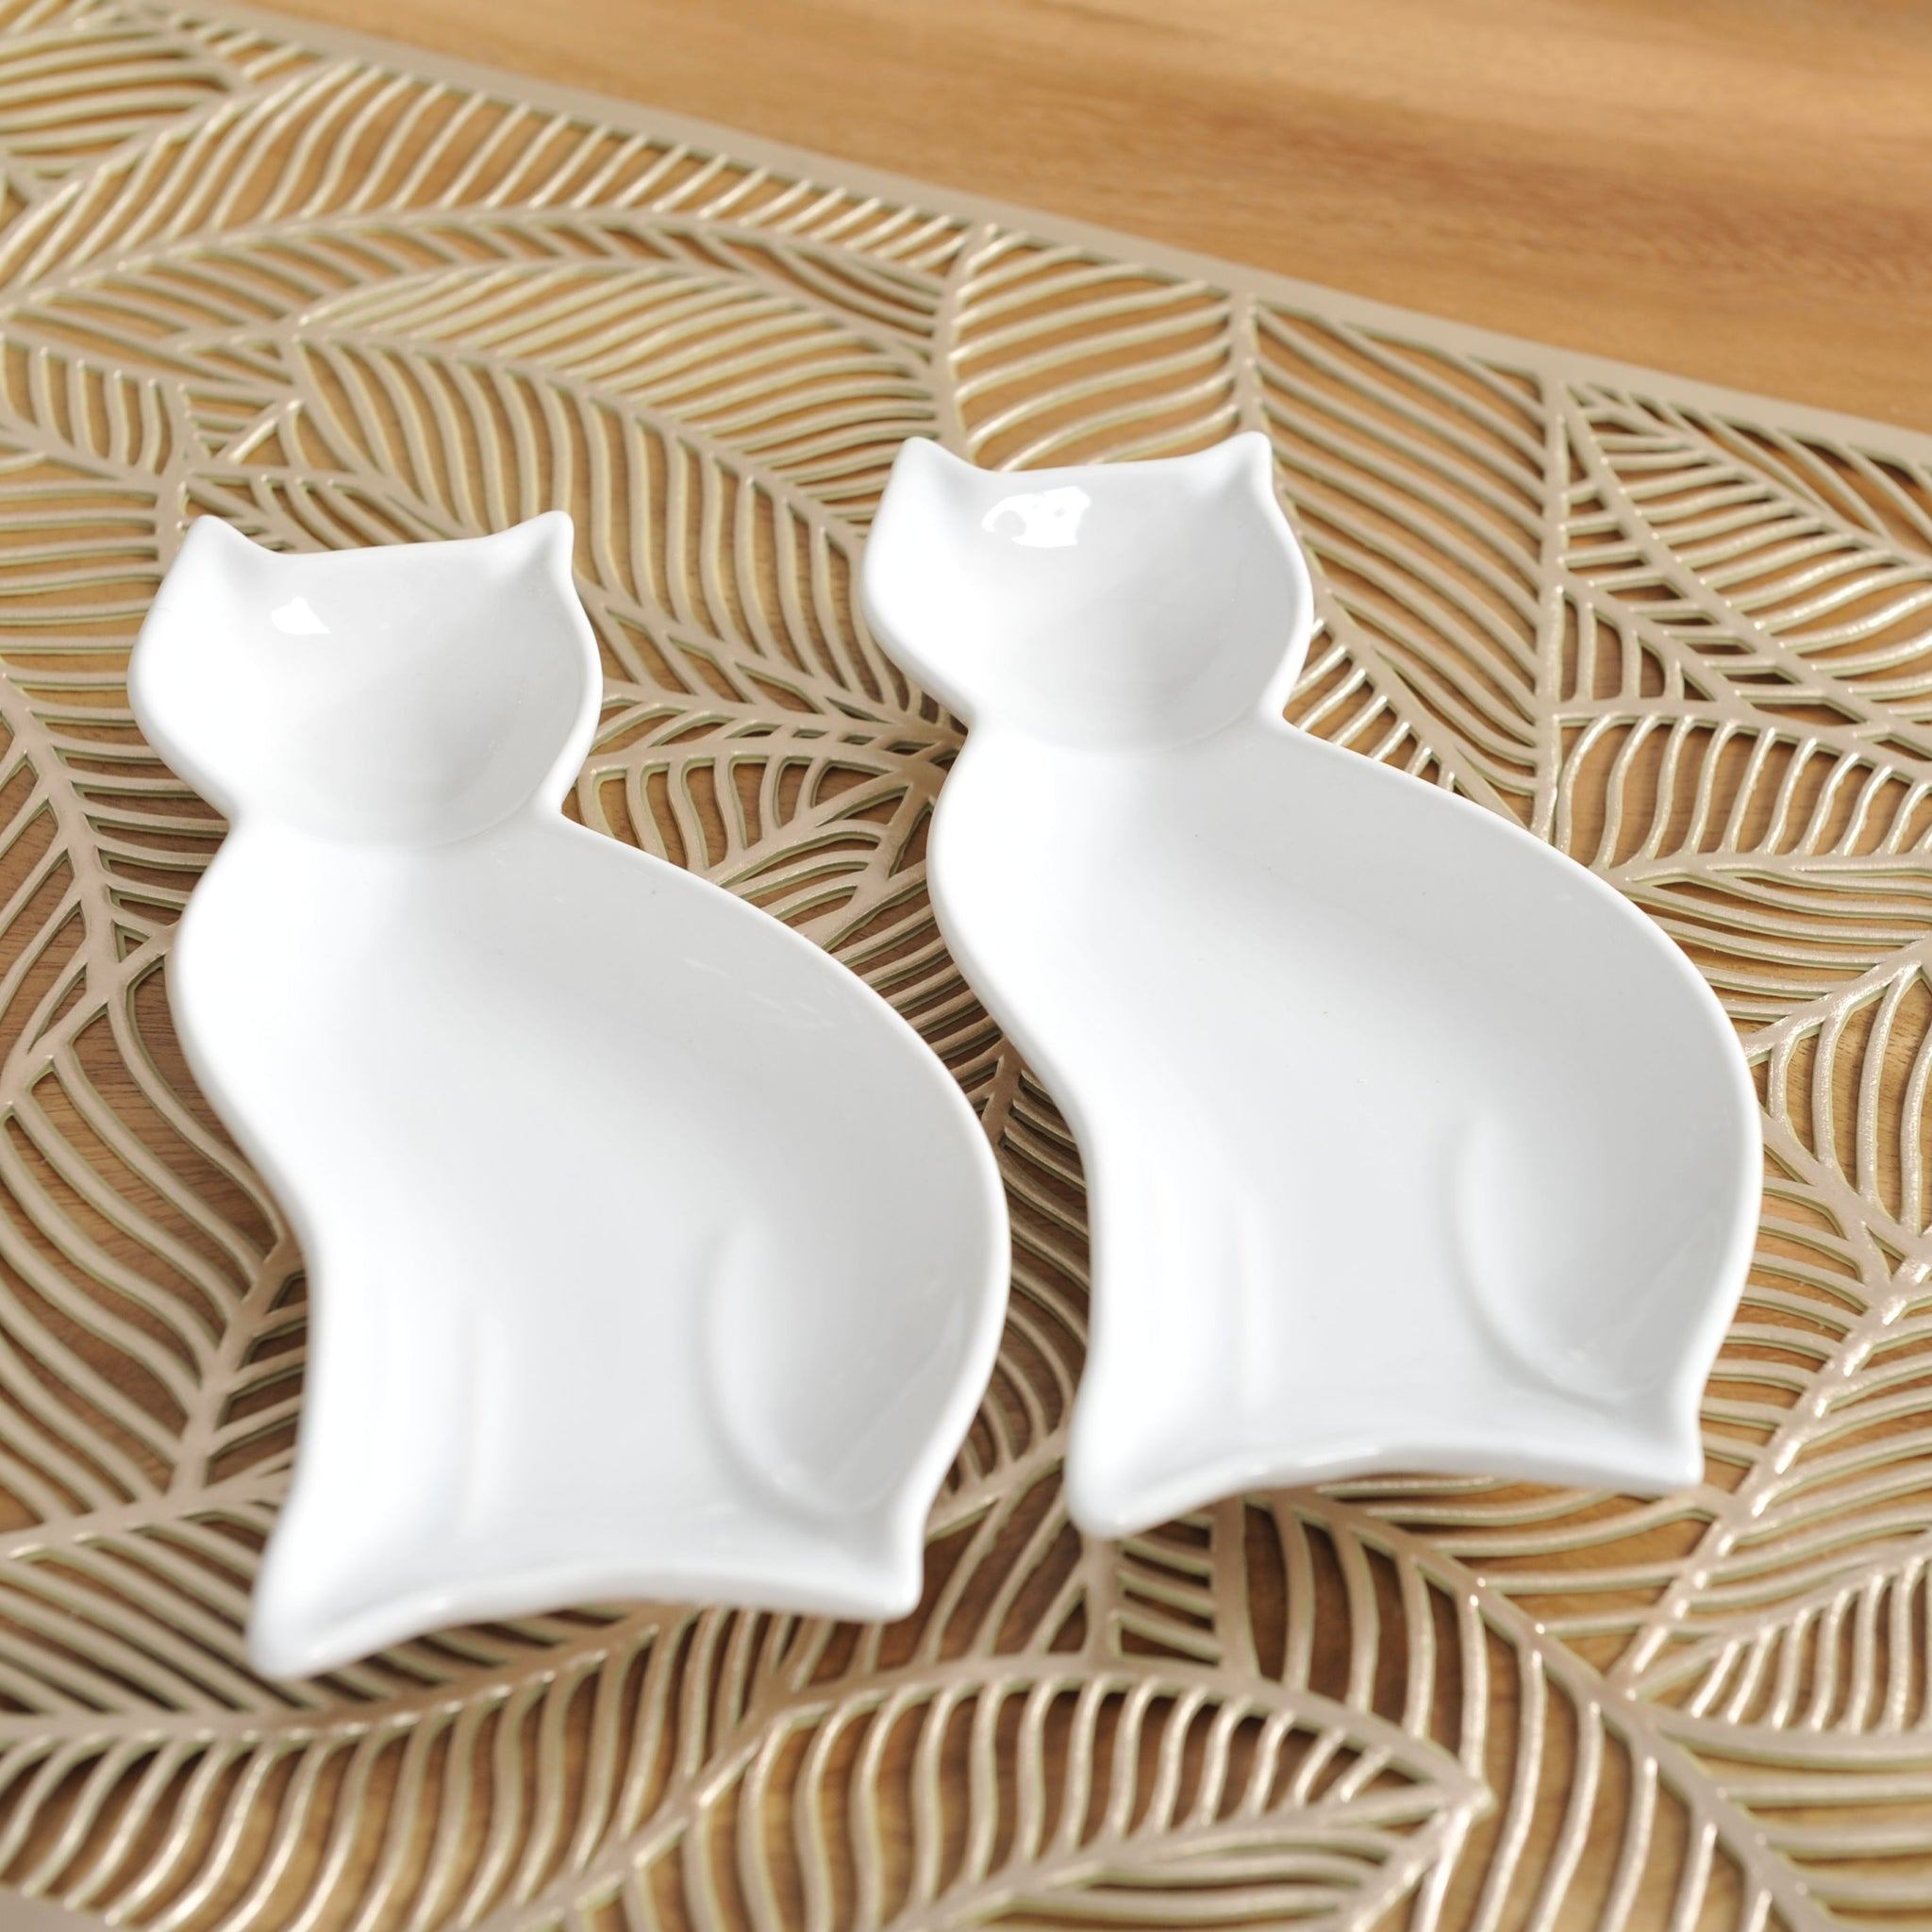 Set of 2 Cat Shaped Dishes